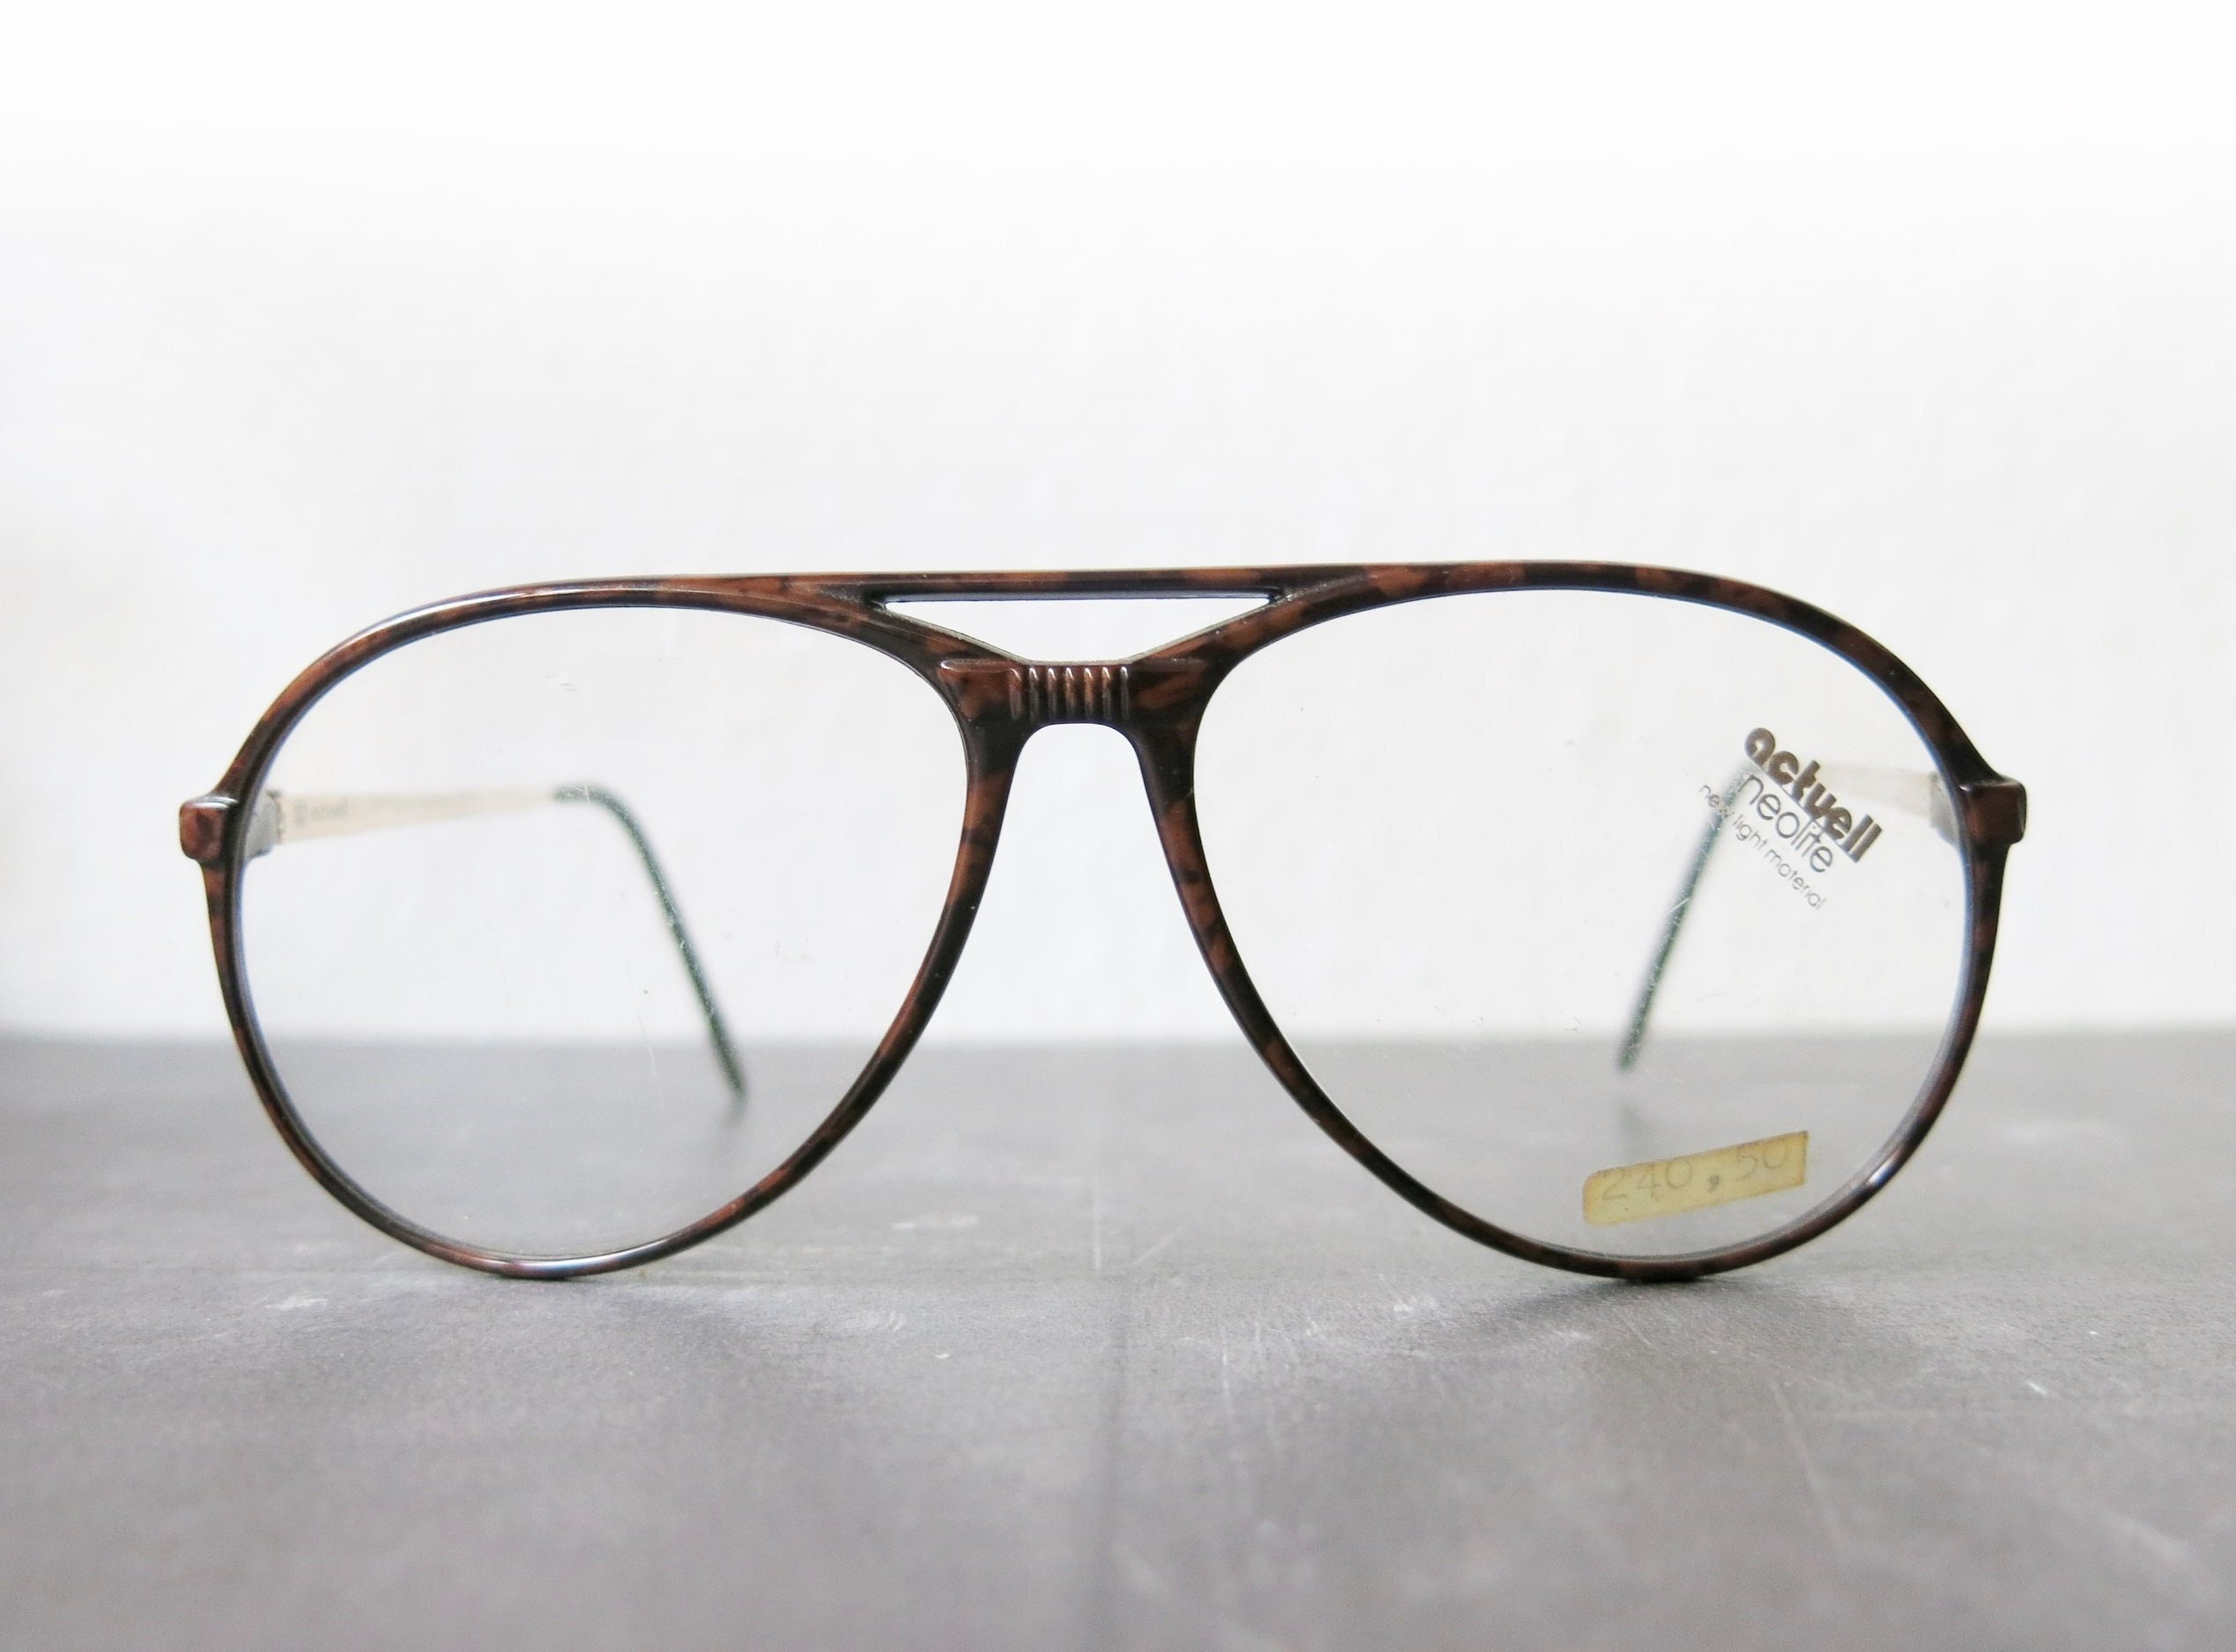 Actuell Couture Neolite Glasses, Aviator Form, 80s